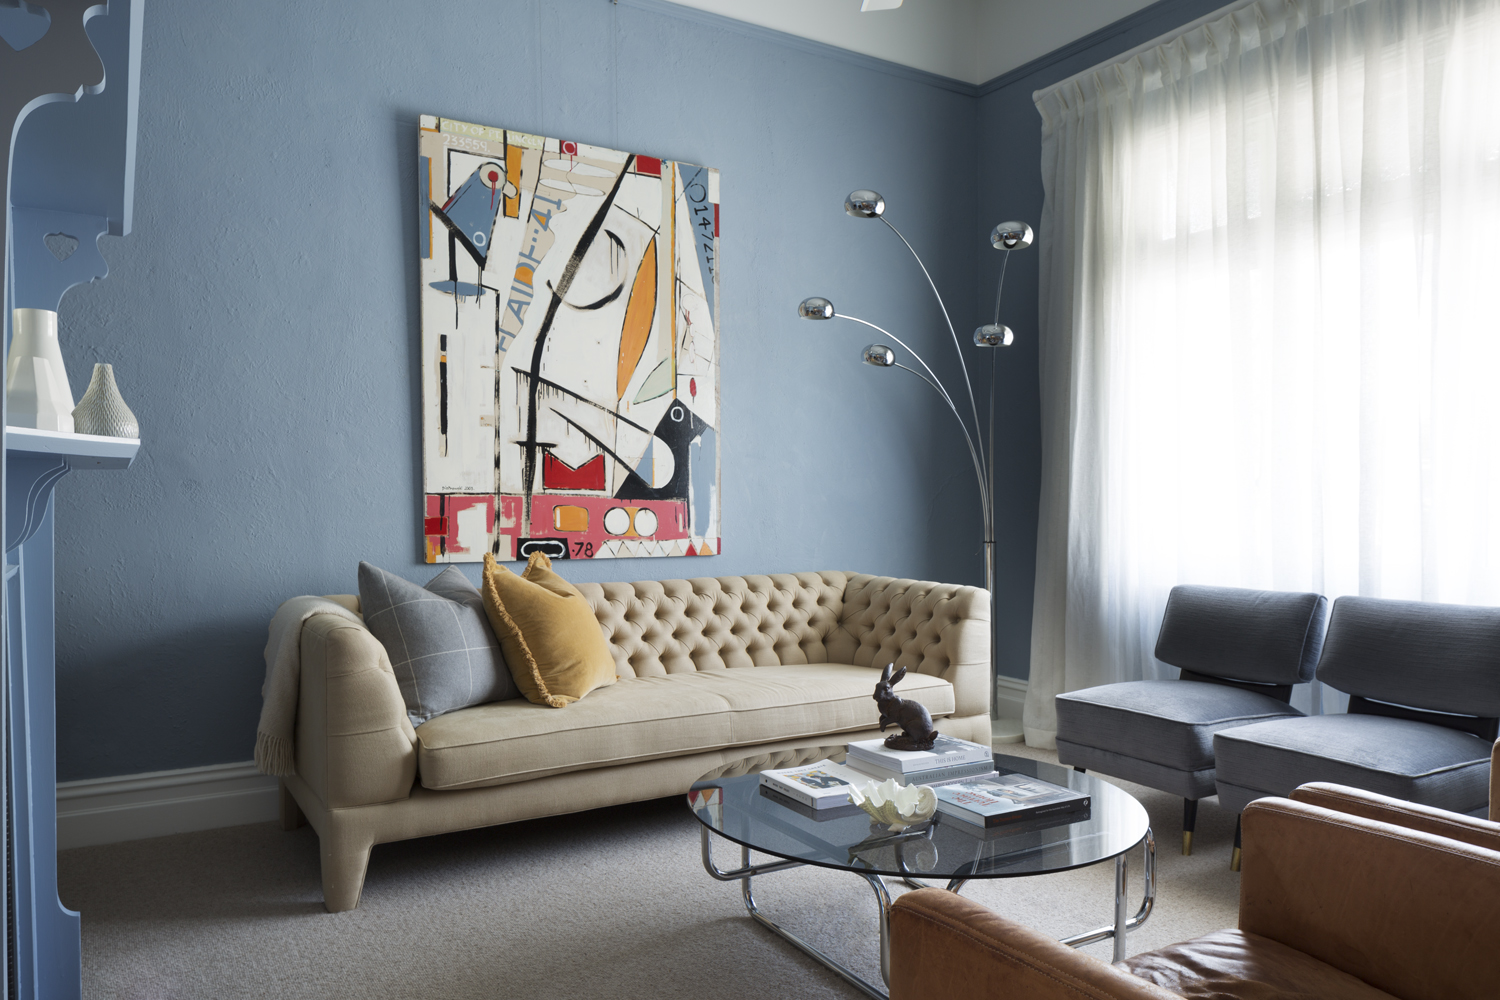 Clifton Hill house living room design by Melbourne interior designer Meredith Lee